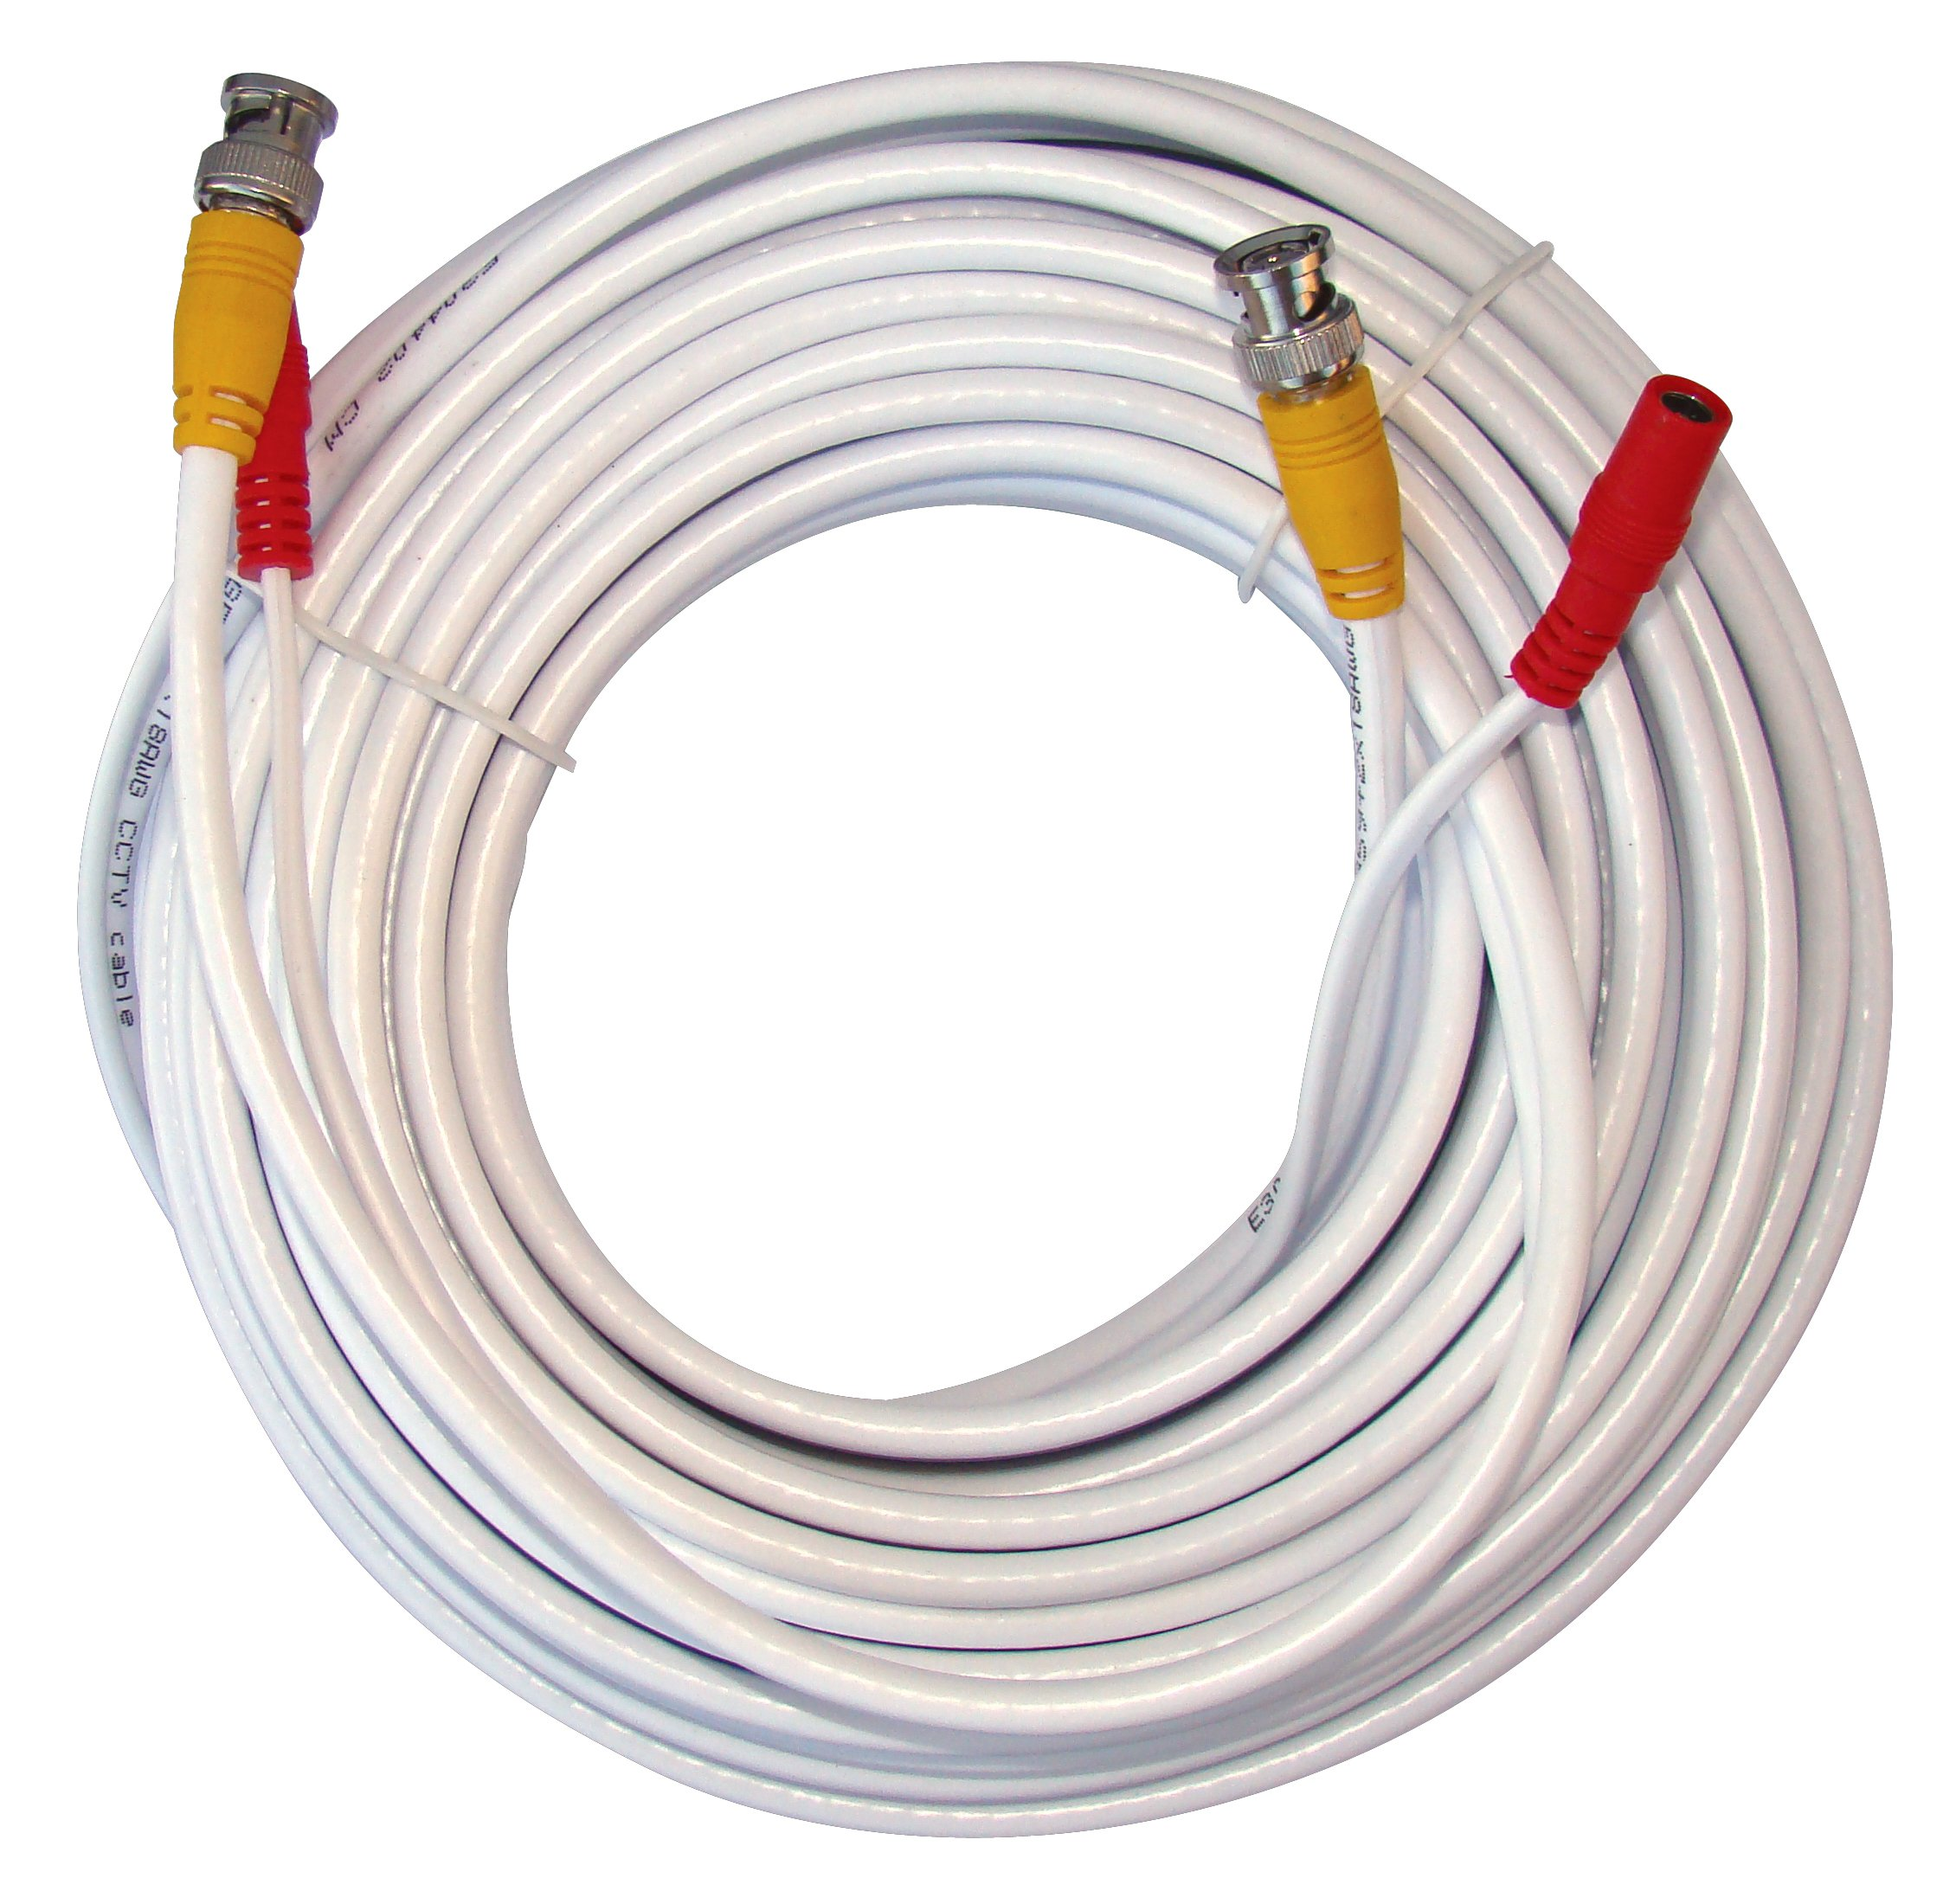 Q-See QSVRG100 UL Rated E475392 Shielded Video & Power 100 Ft BNC Male Cable with 2-Female Connectors | Easy Installation, Weather Resistant, Strong UL Approved Cable | White